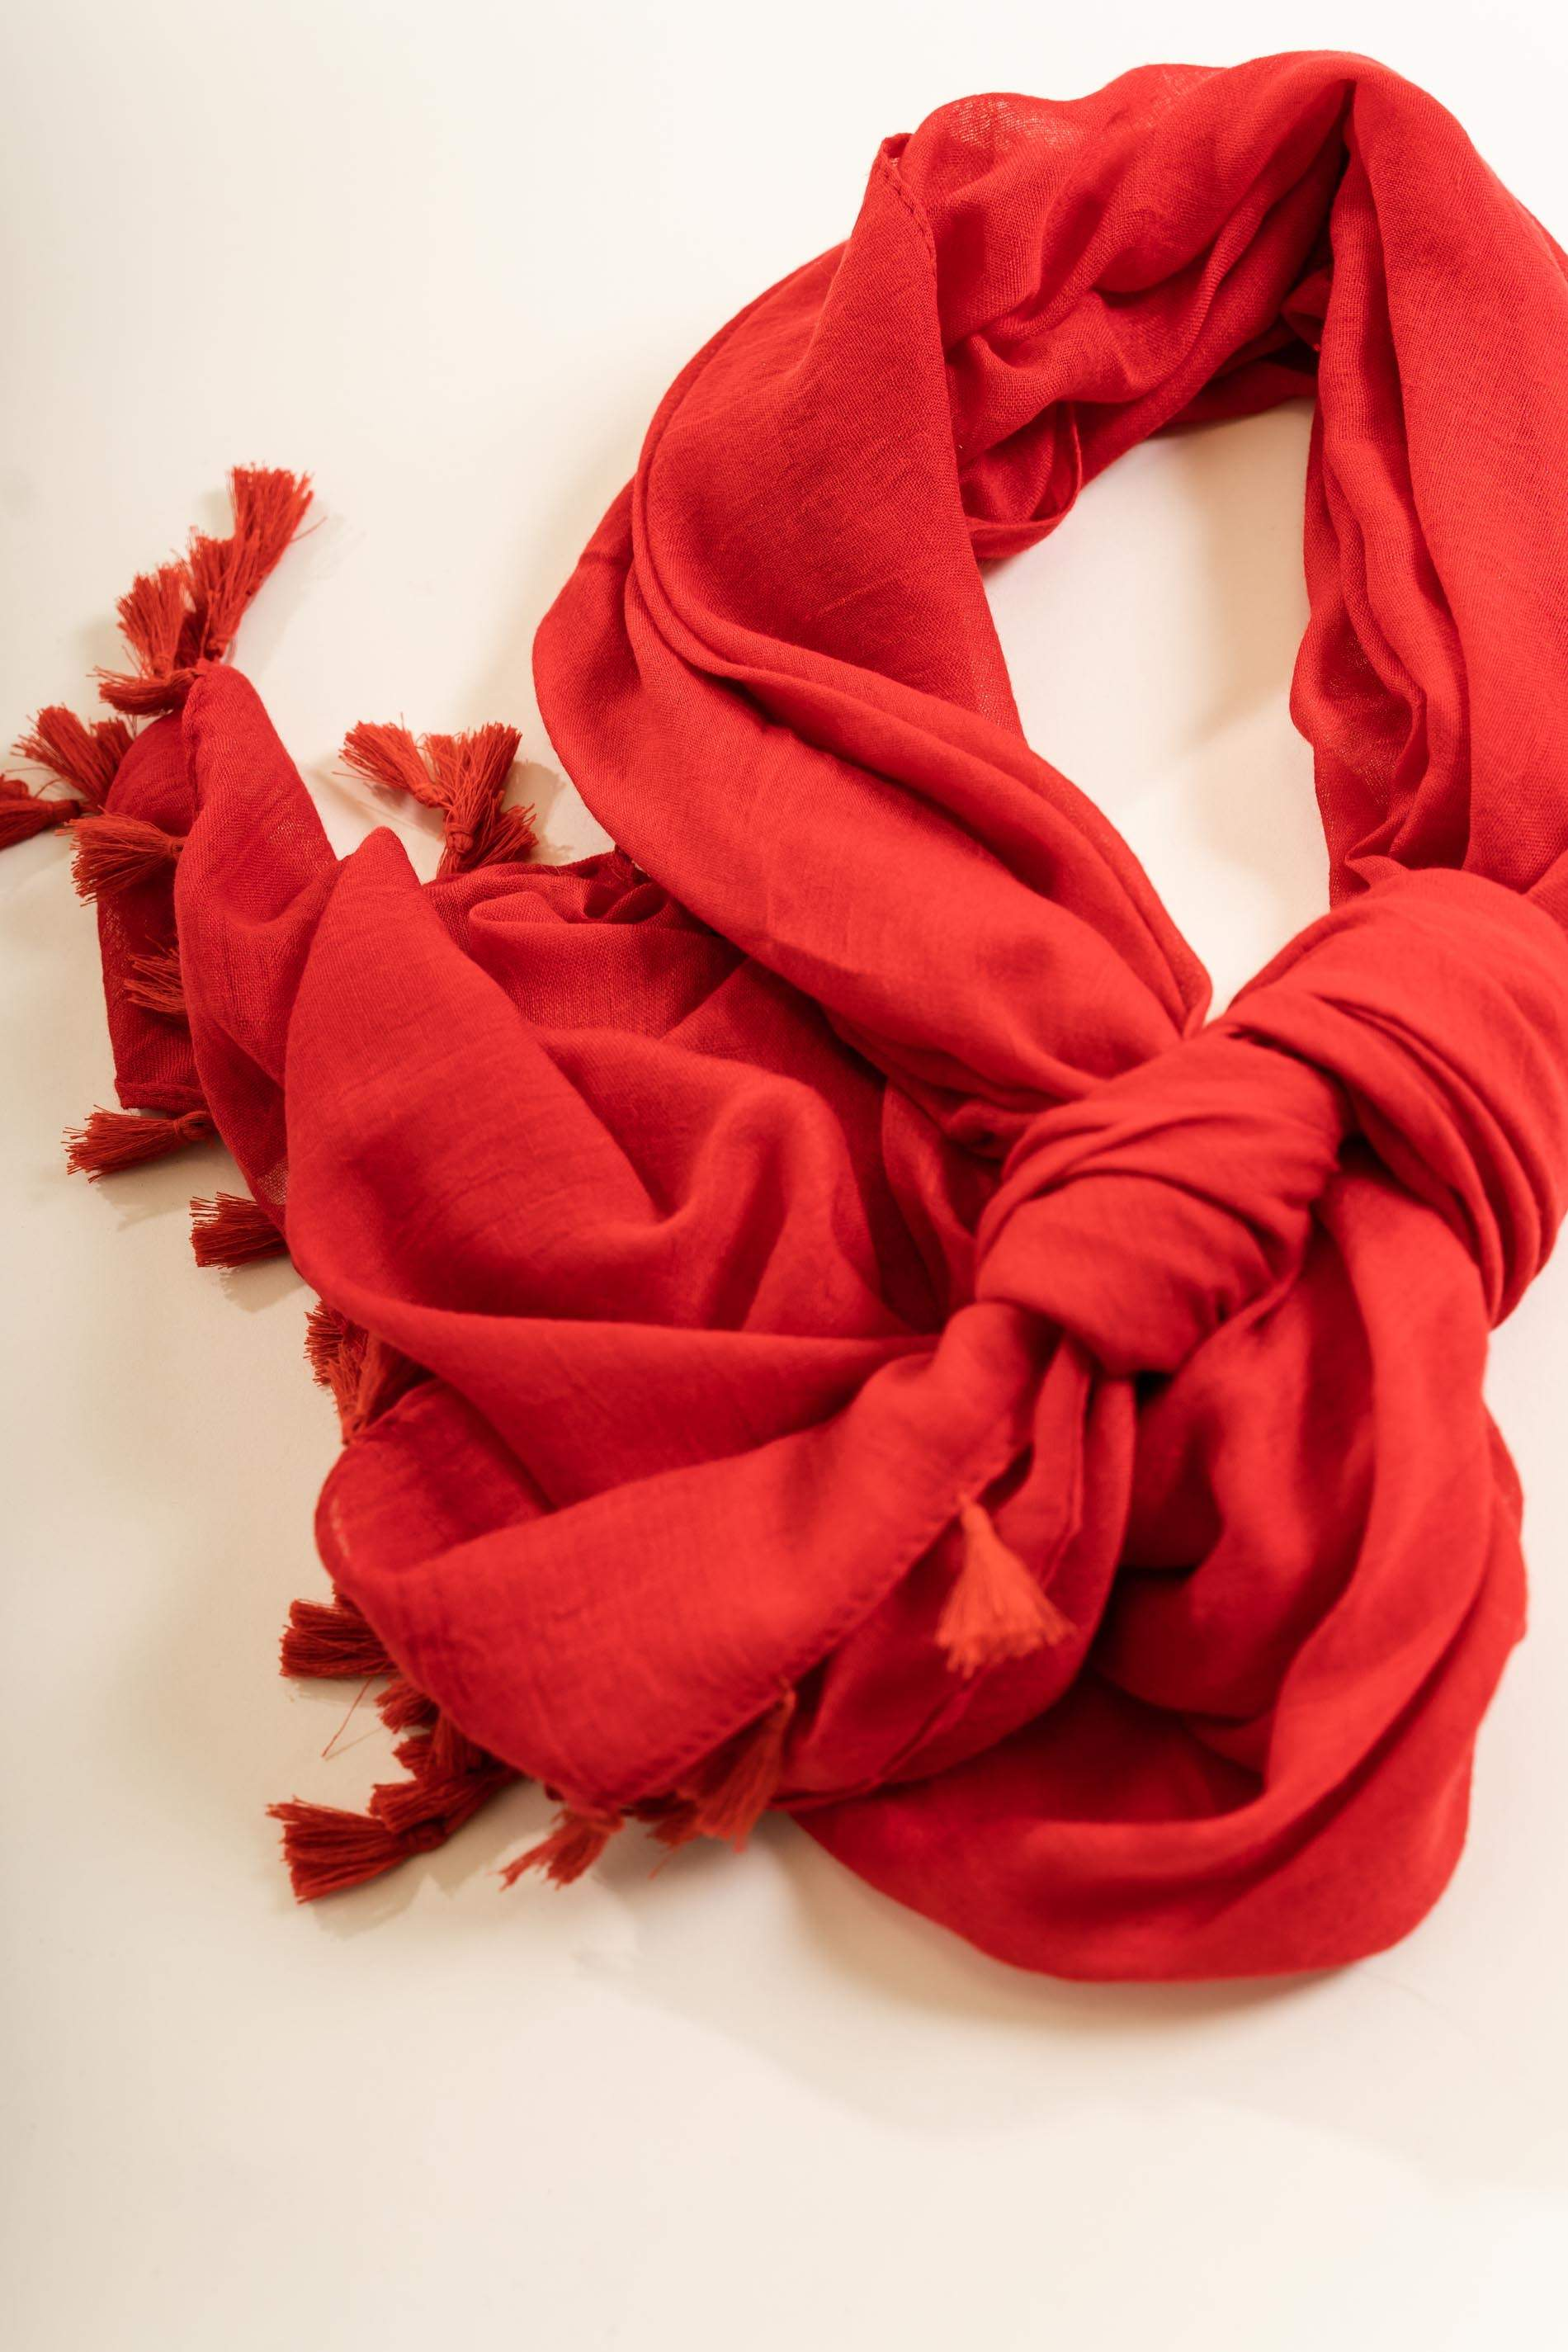 FOULARD COLOR FLEQUITOS